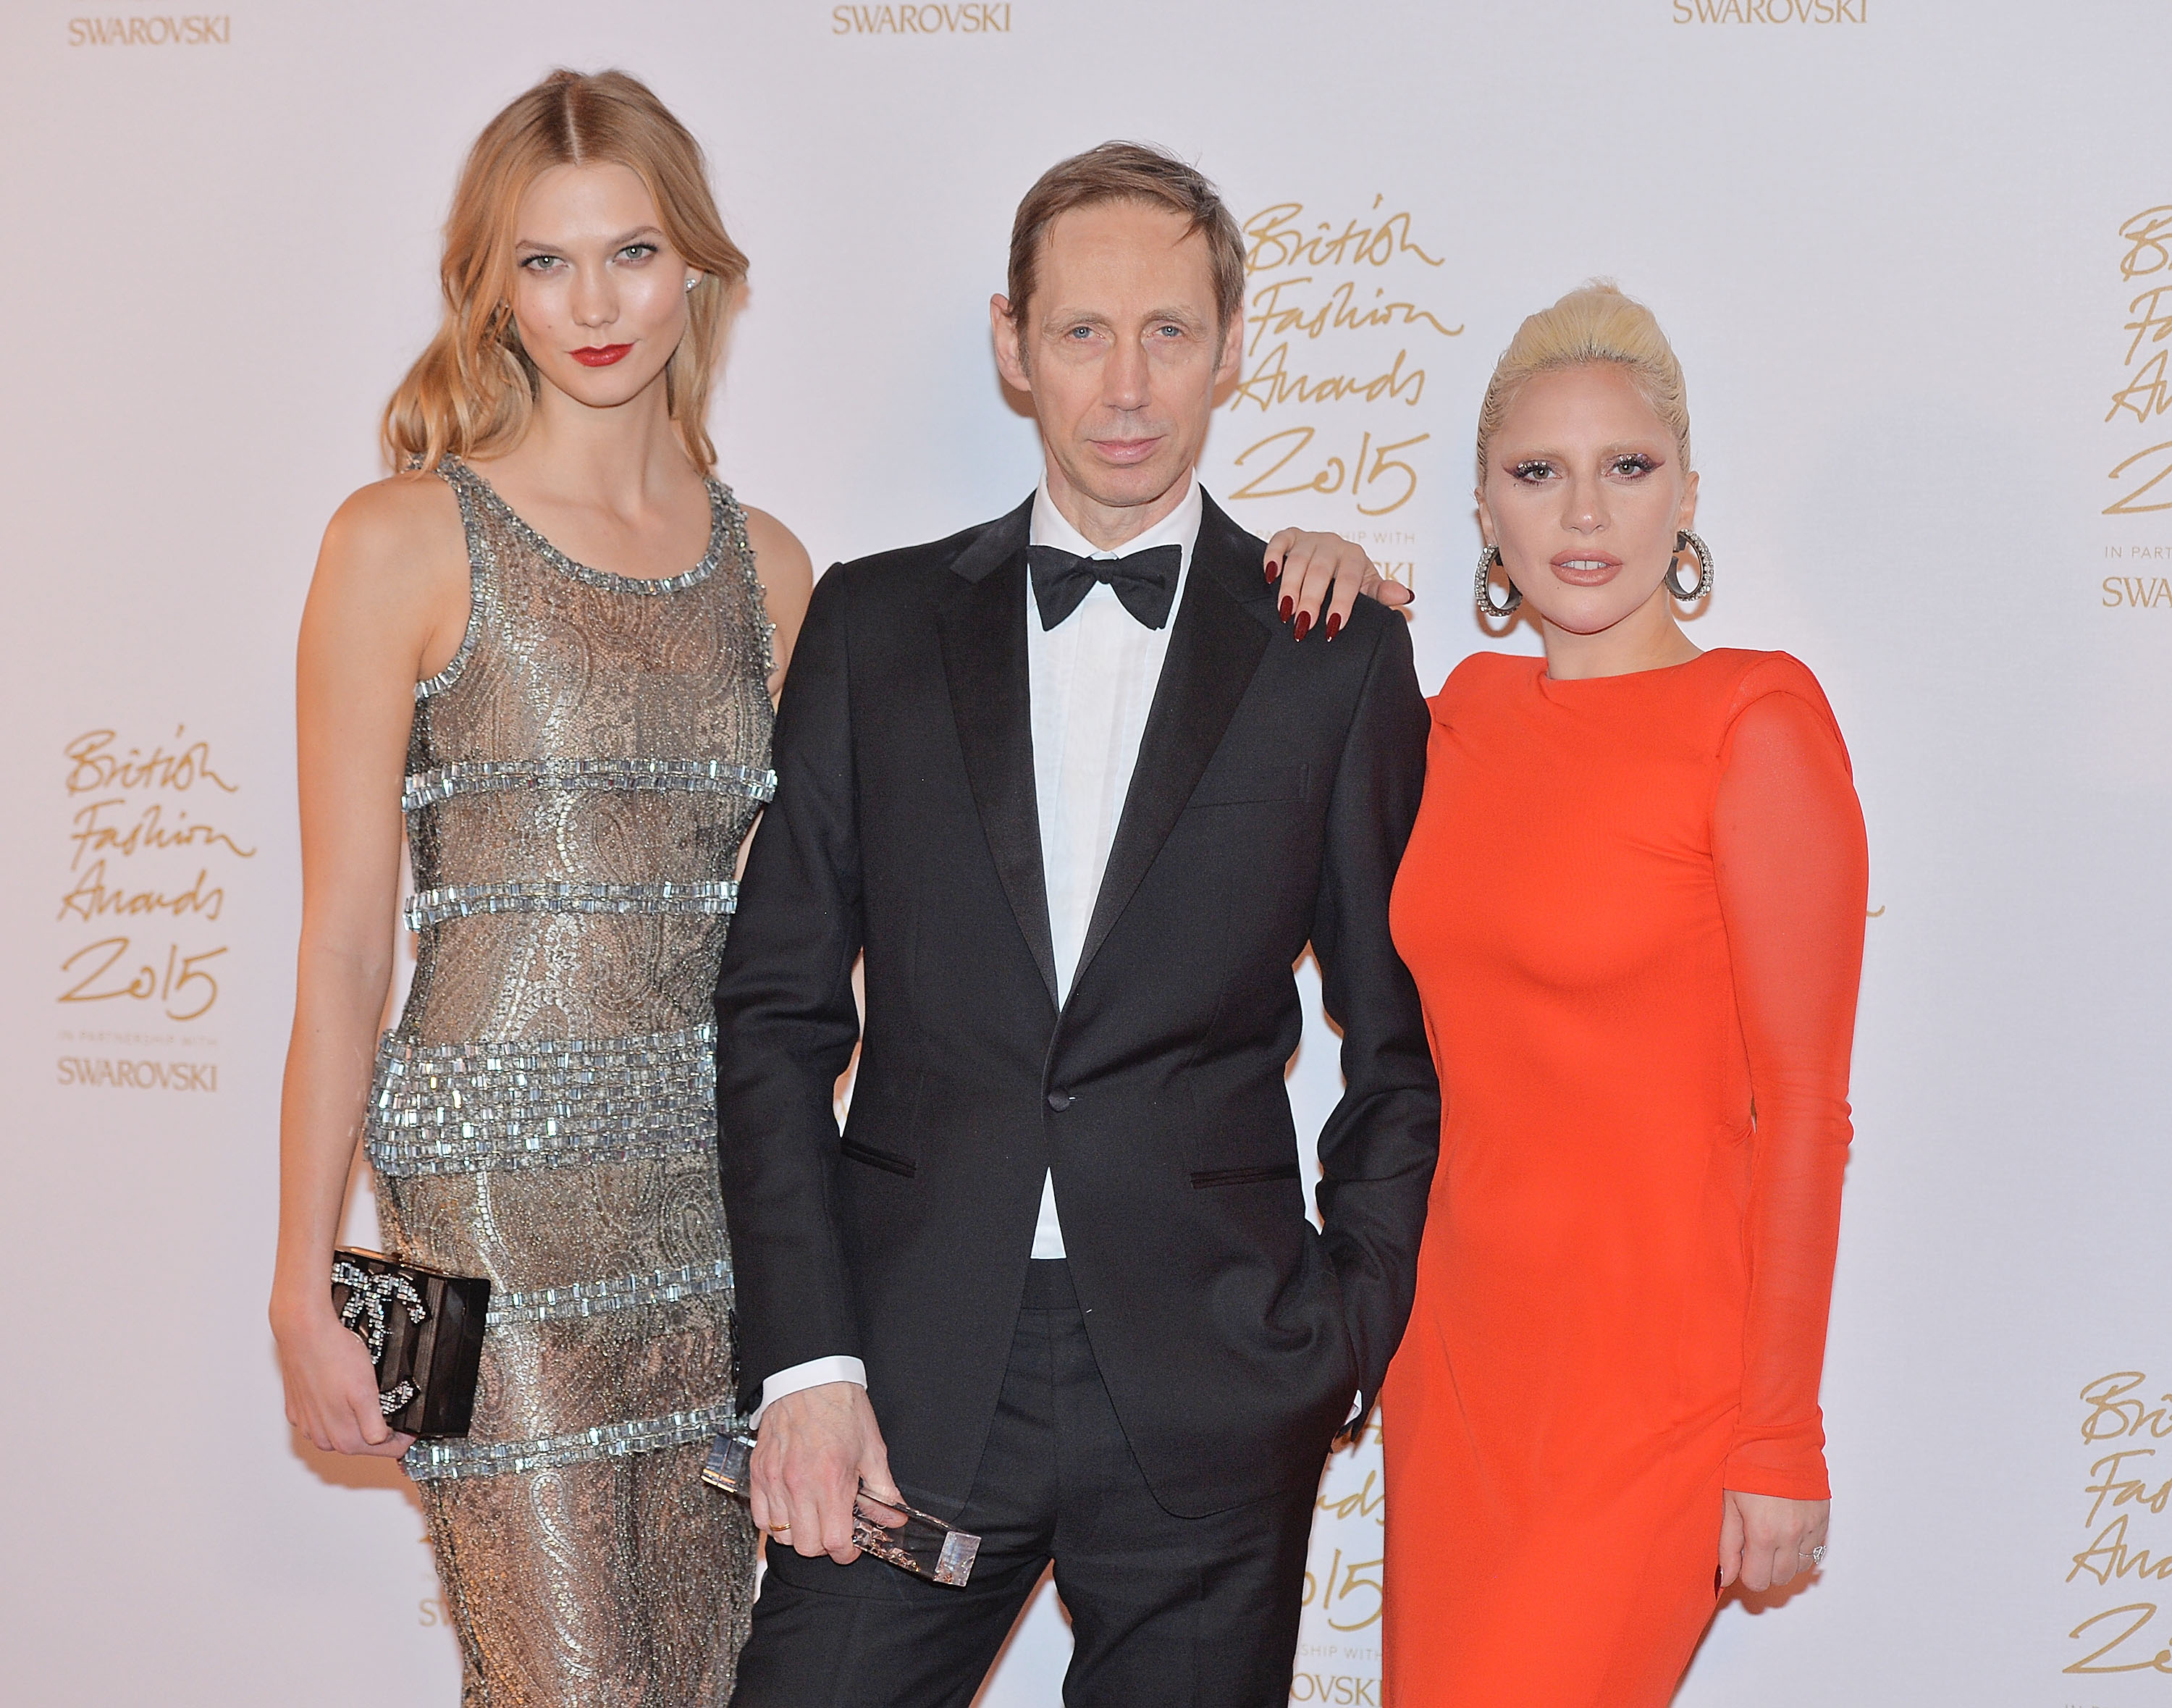 LONDON, ENGLAND - NOVEMBER 23: Karlie Kloss, Nick Knight and Lady Gaga pose in the Winners Room at the British Fashion Awards 2015 at London Coliseum on November 23, 2015 in London, England. (Photo by Anthony Harvey/Getty Images)